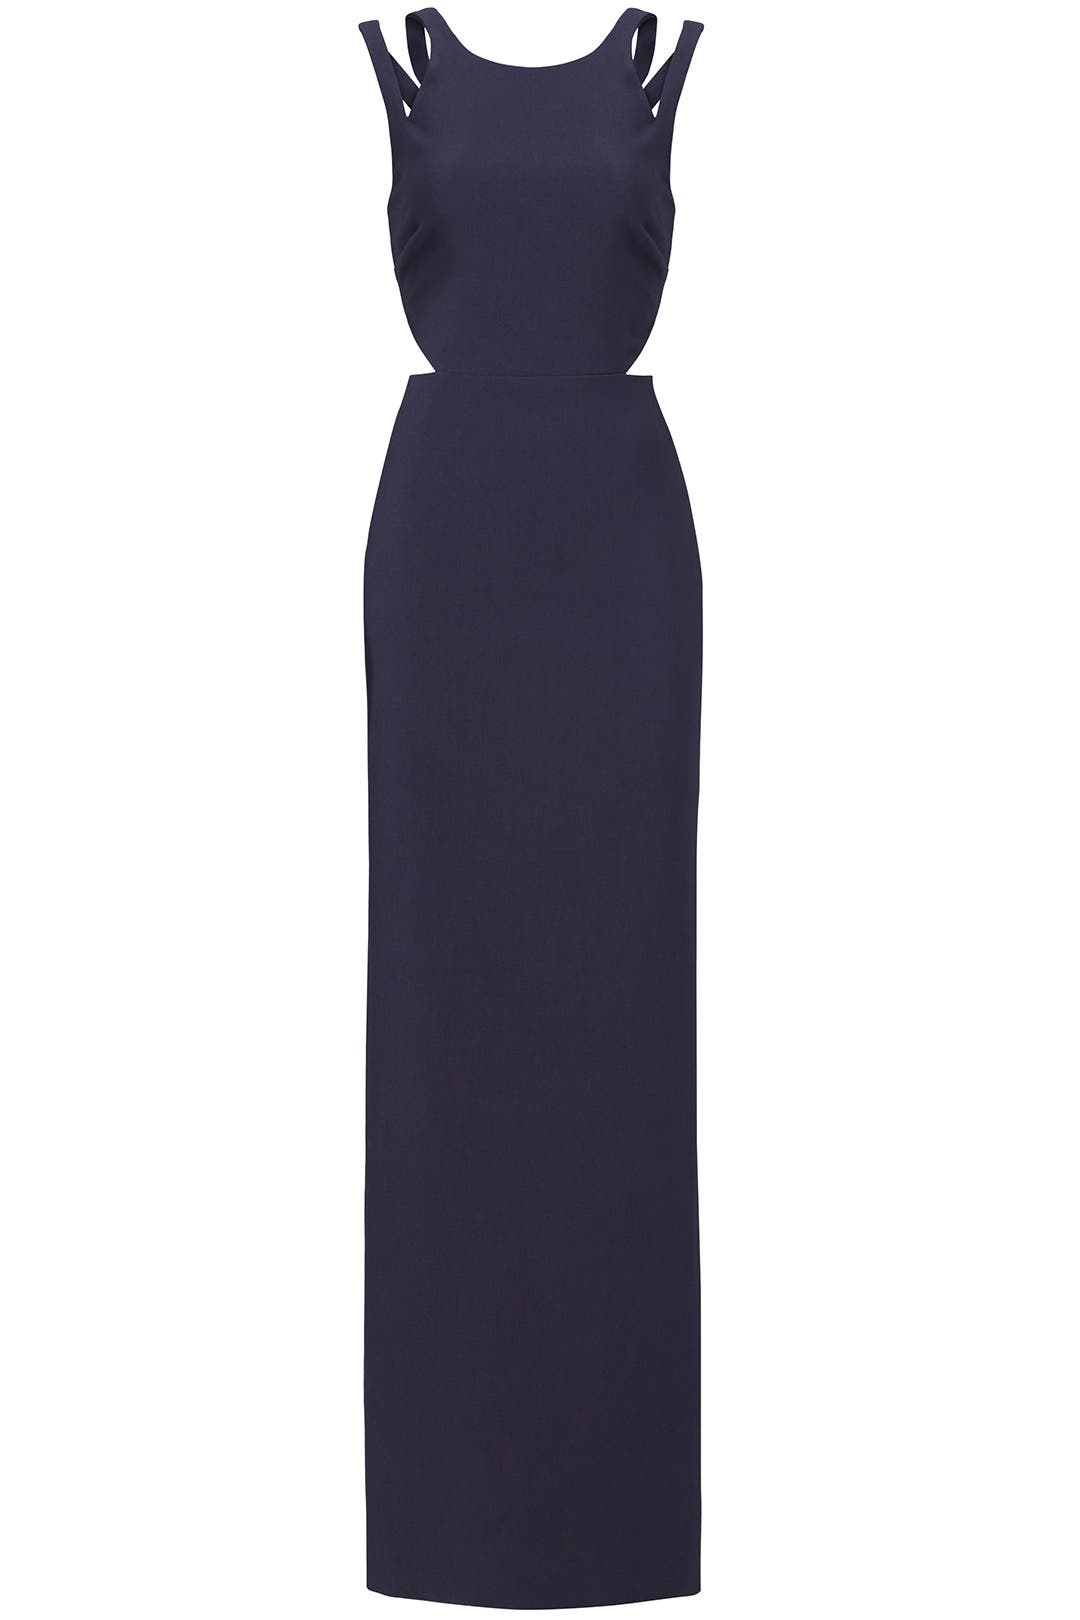 Navy Marina Cutout Gown by LIKELY for $65 - $75 | Rent the Runway